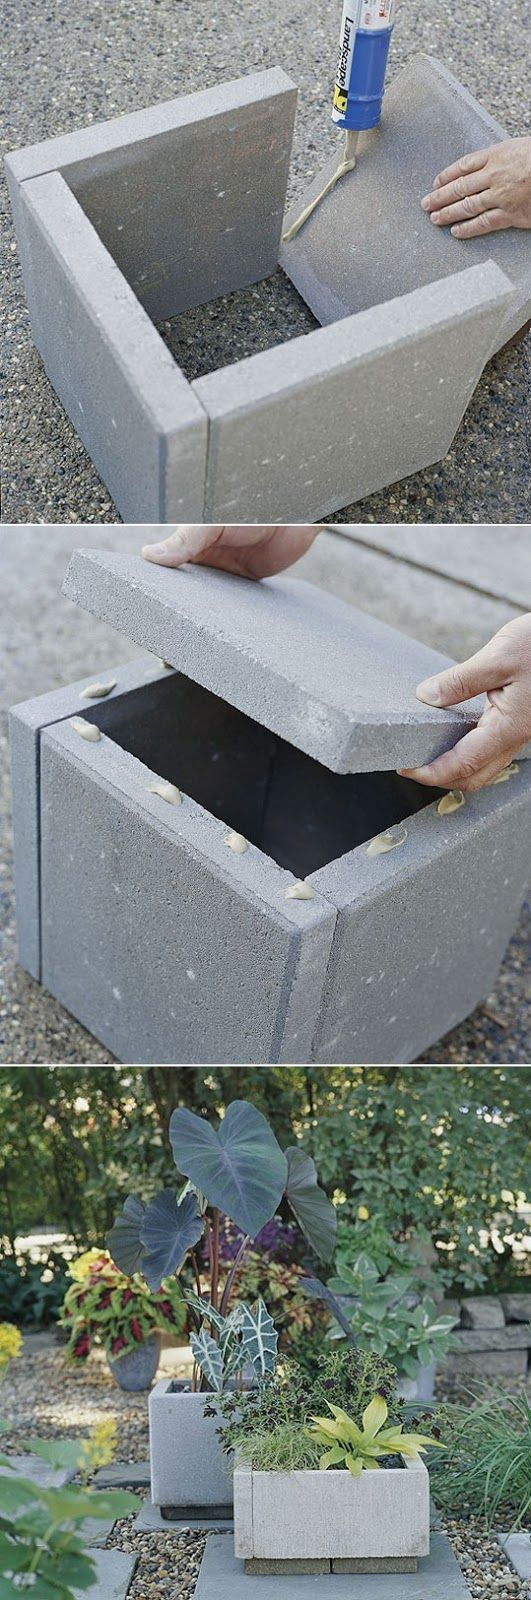 diy-modern-and-concrete-planters-9